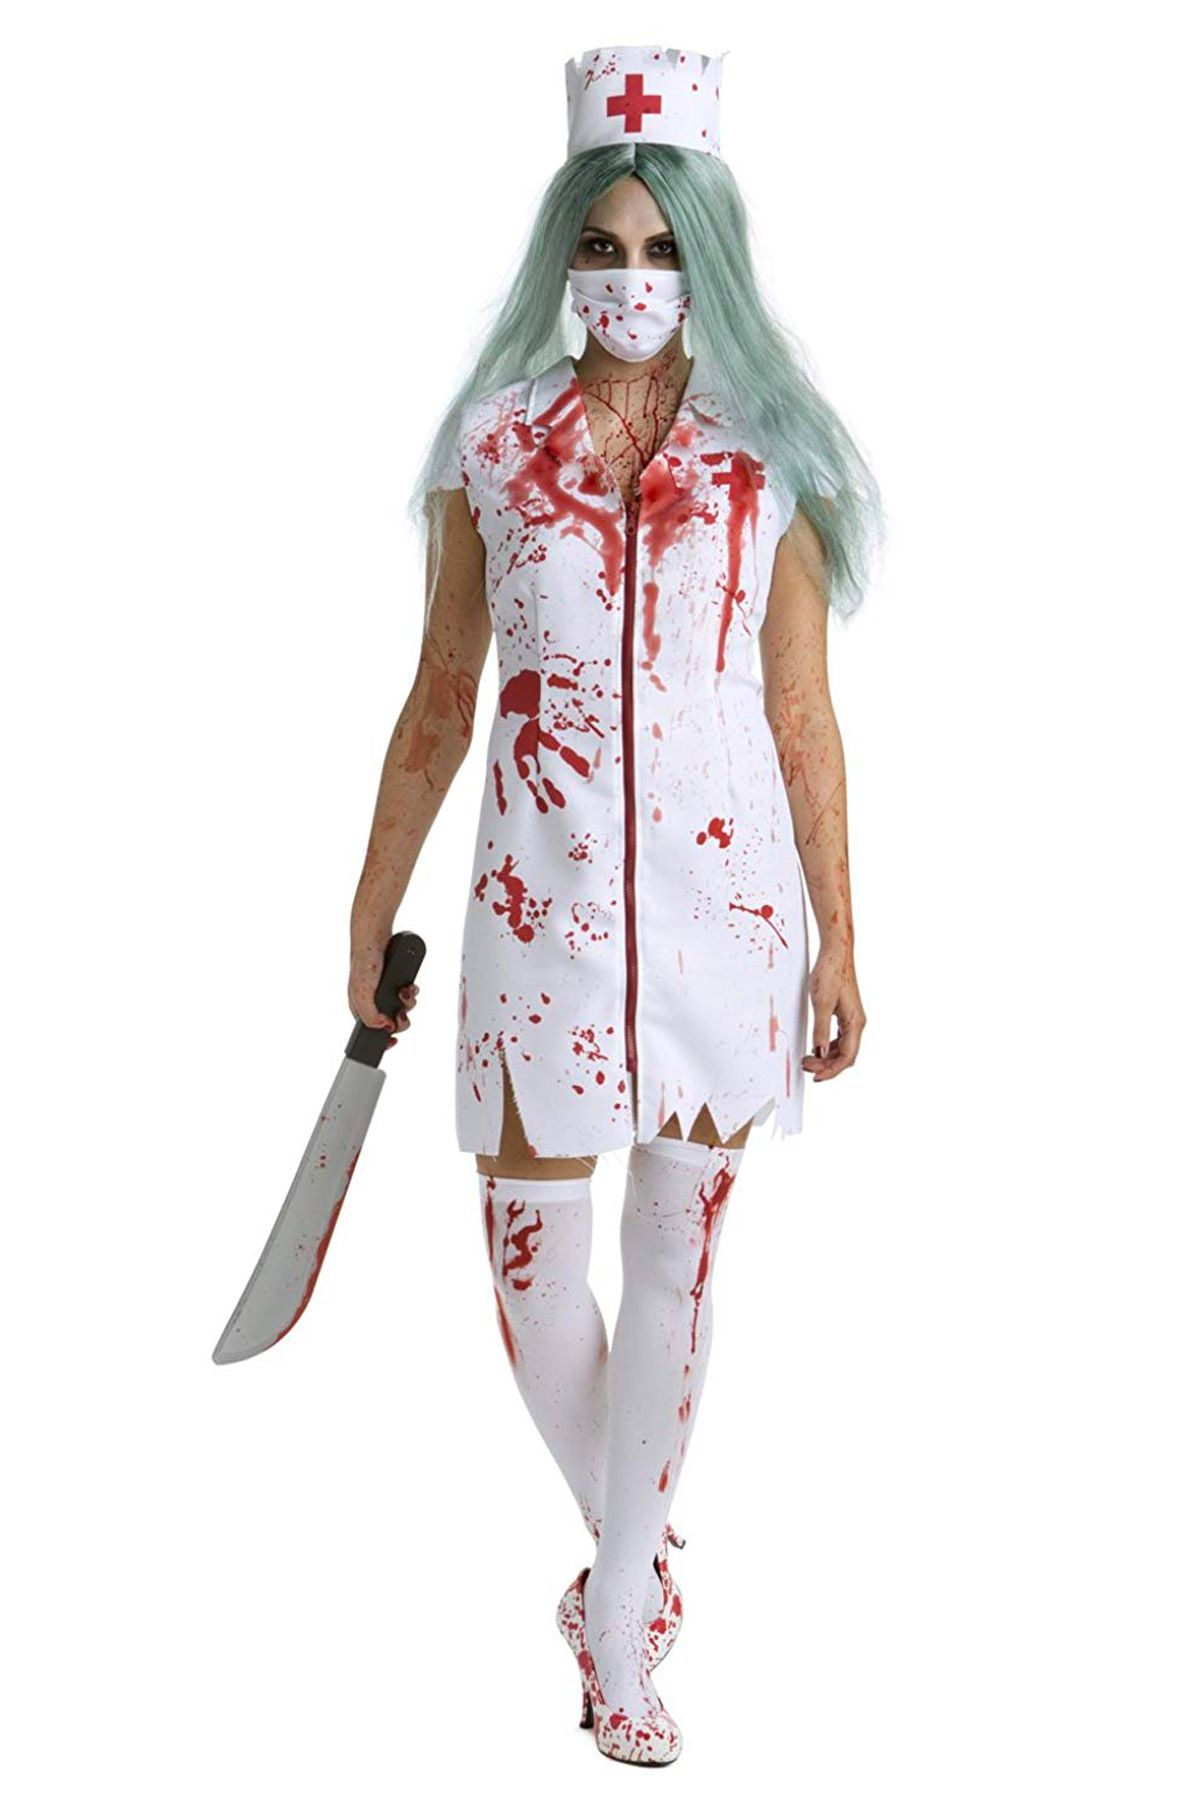 25 scary halloween costume ideas scariest costumes for women men